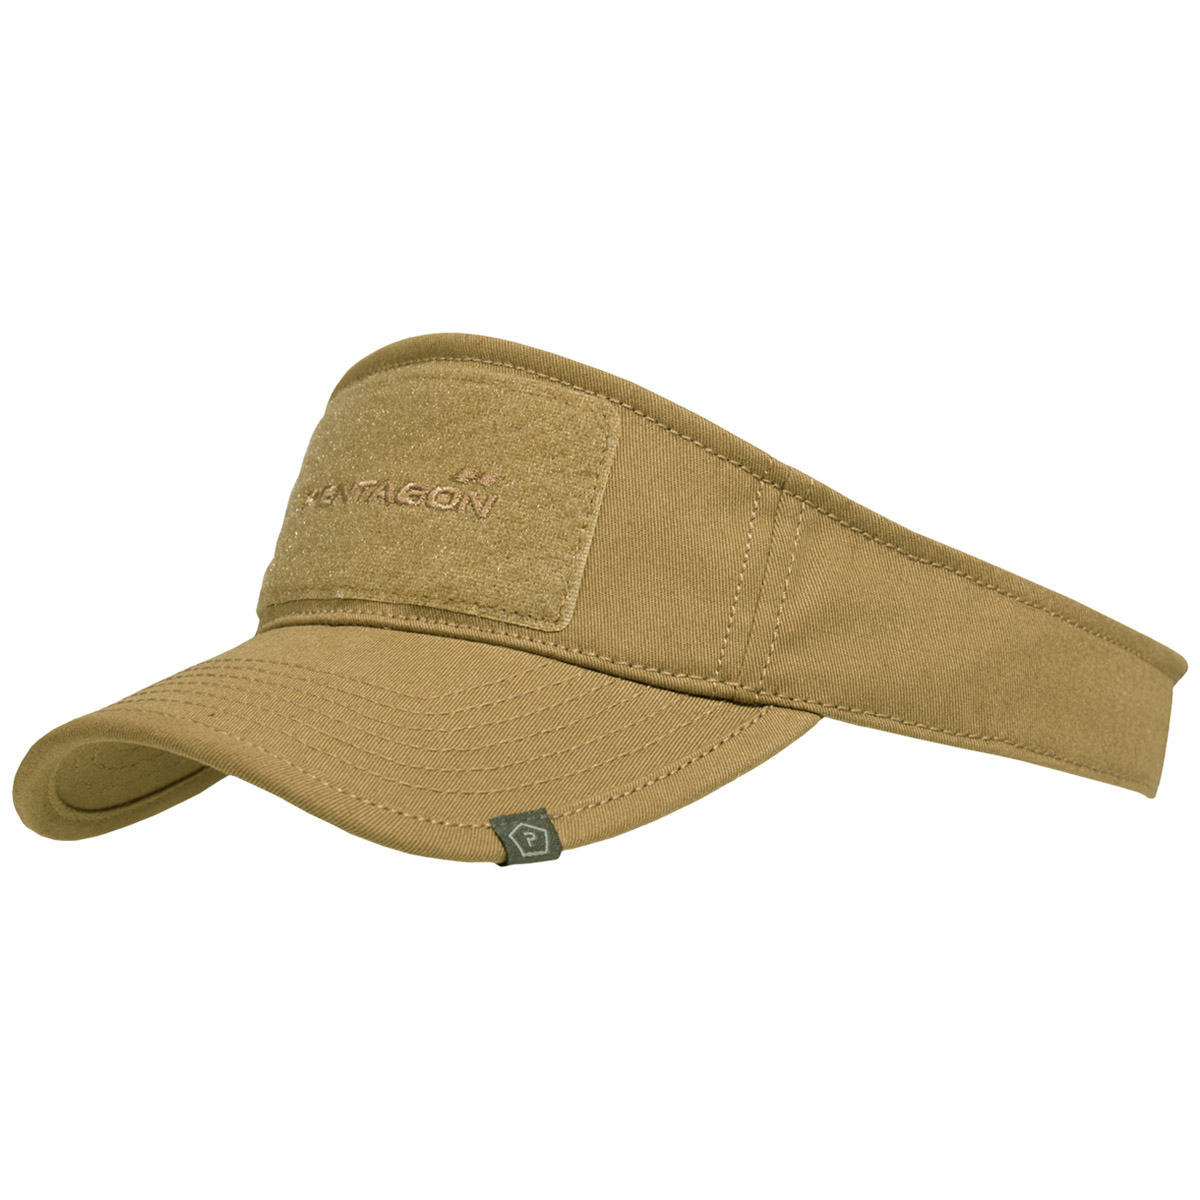 99e7bb4473b Details about Pentagon Visor Tactical Baseball Cap Military Shooting  Hunting Sun Hat Coyote